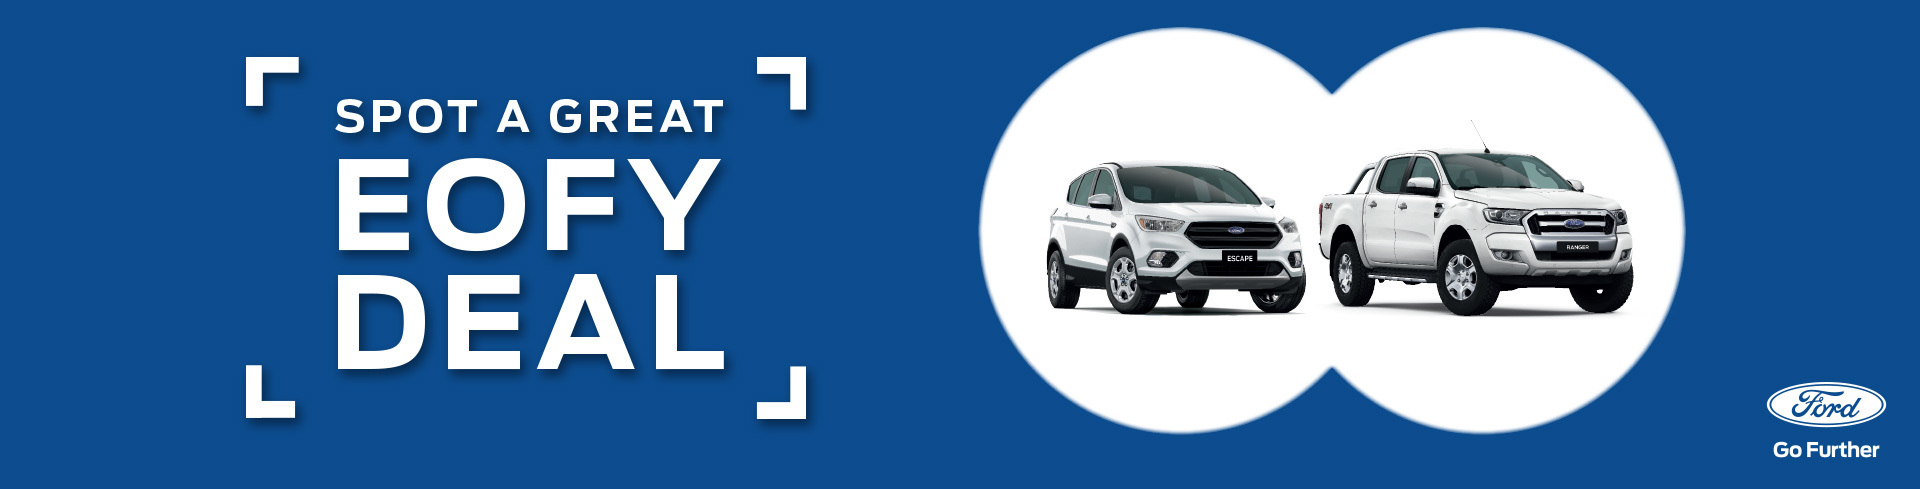 Ford - Nationa |Offer - Spot Great EOFY Deals